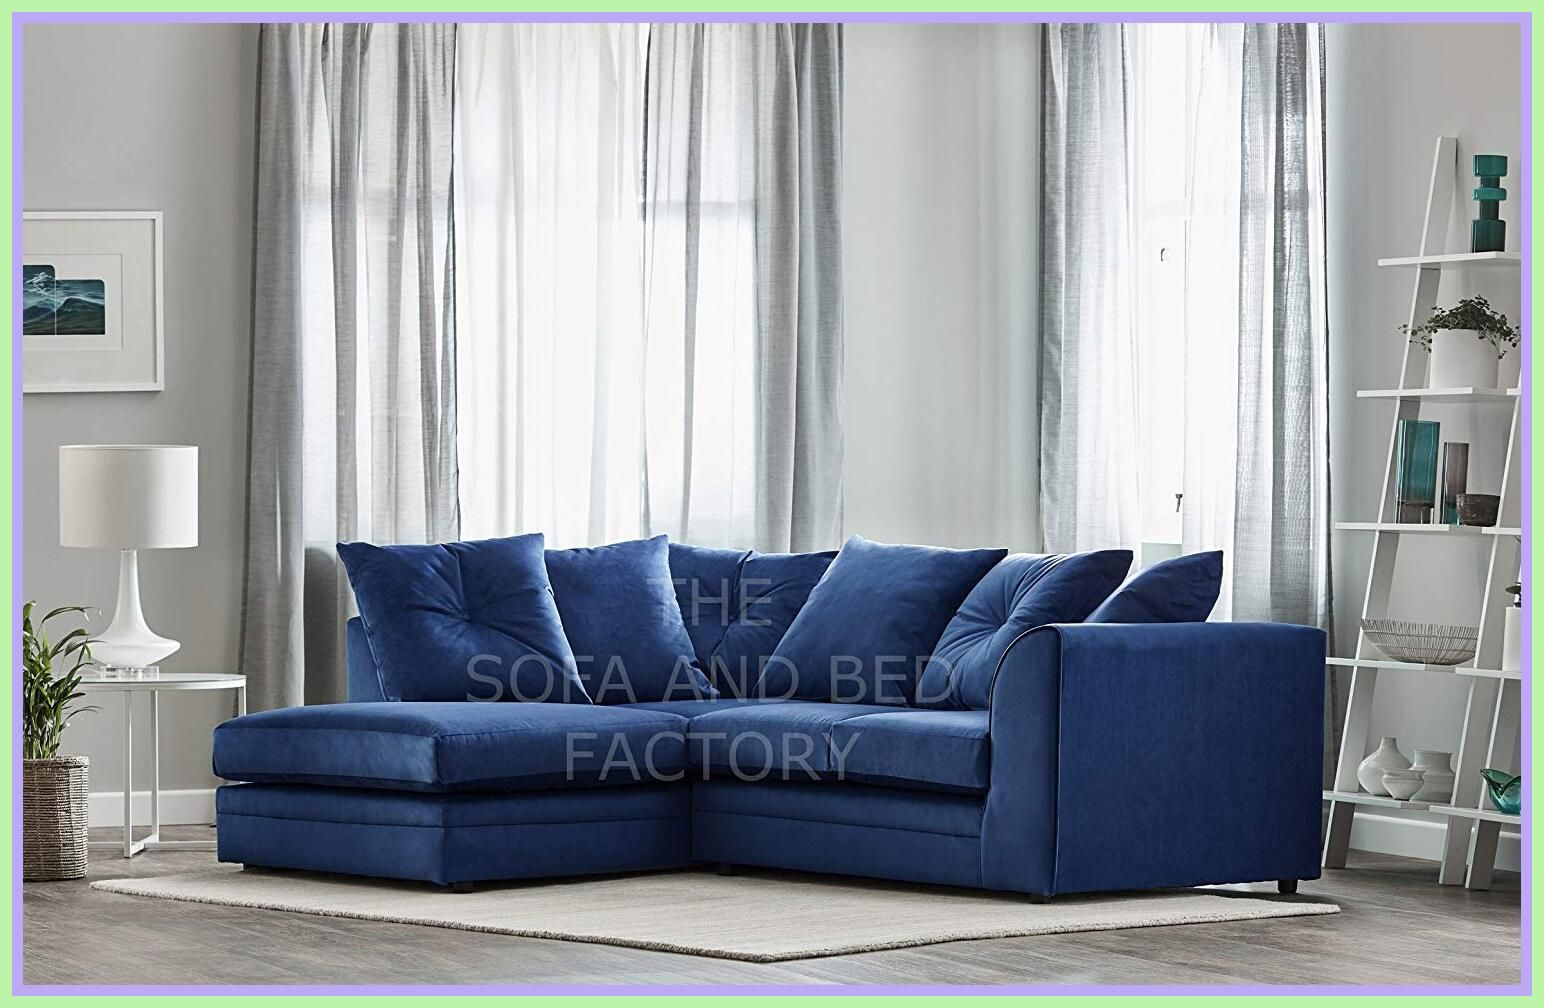 85 Reference Of Corner Chaise Sofa Blue In 2020 Small Corner Sofa Small Corner Couch Blue Corner Sofas